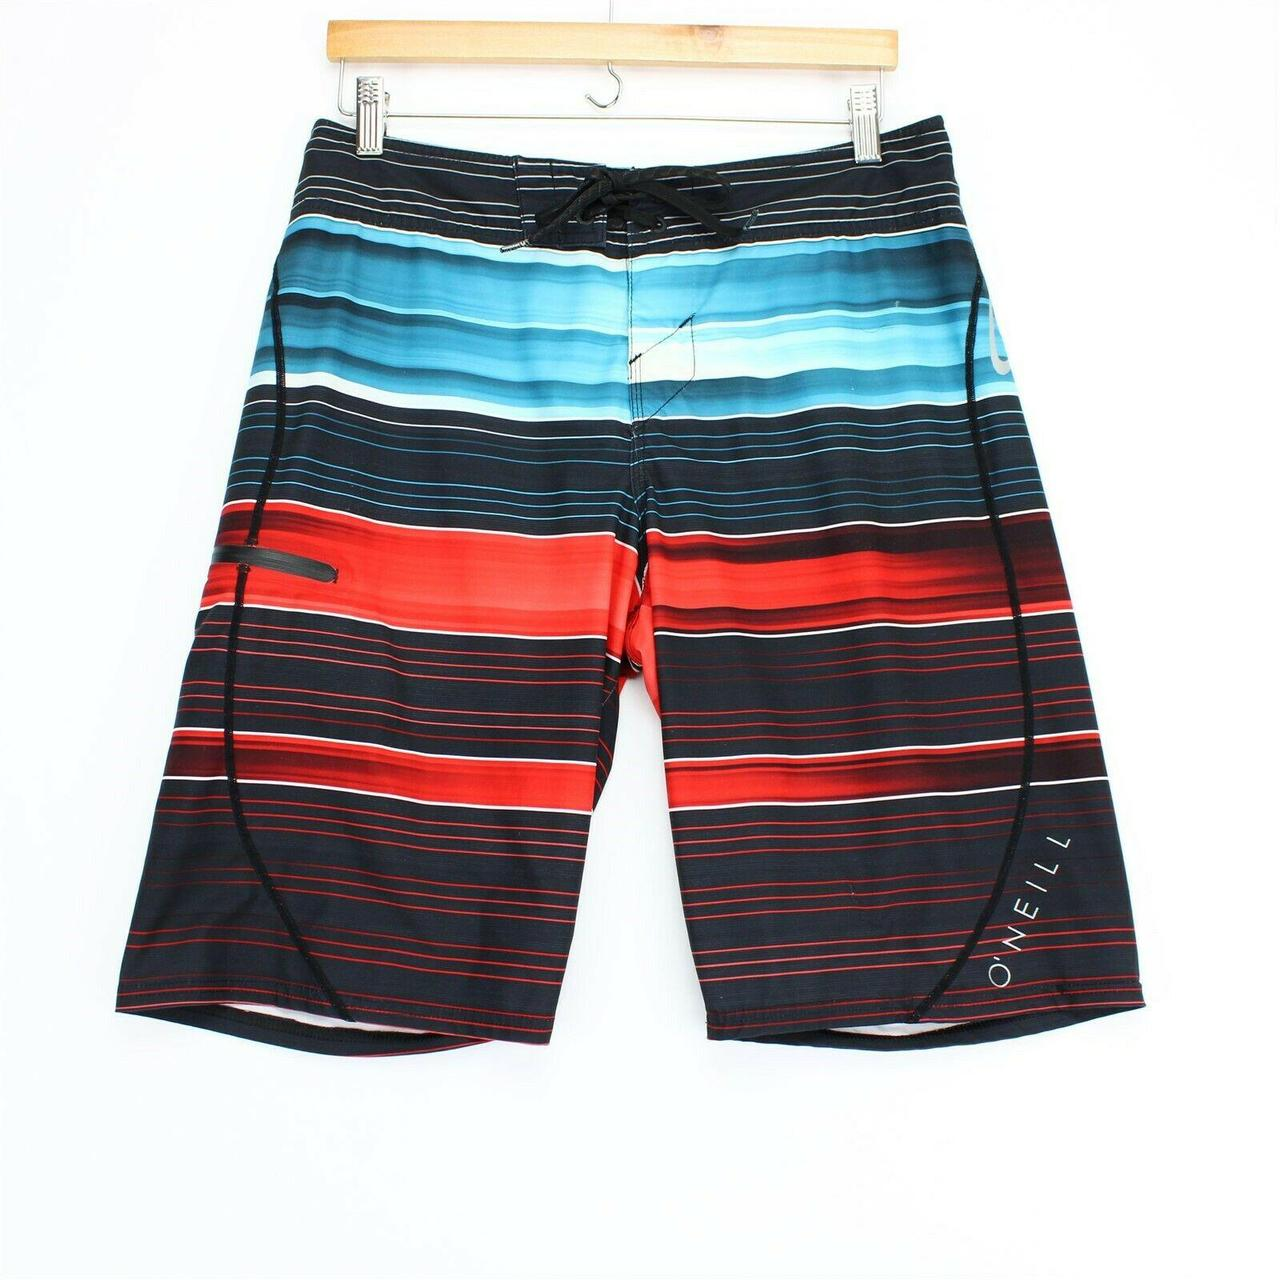 Product Image 1 - O'neill Mens Size 31 Jordy